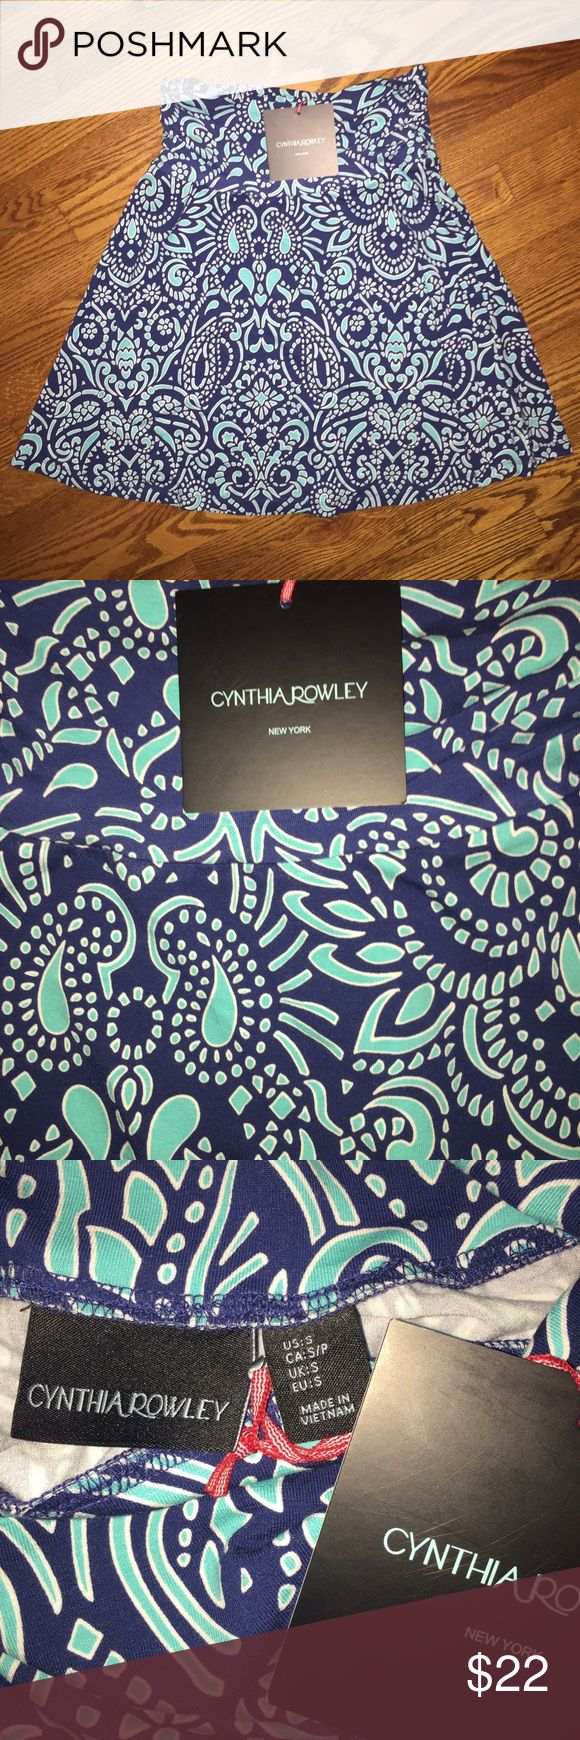 NWT Cynthia Rowley skirt...Size S NWT gorgeous Cynthia Rowley skirt...navy blue with robin's egg blue and white design...Size S in excellent condition from a smoke free home! Cynthia Rowley Skirts